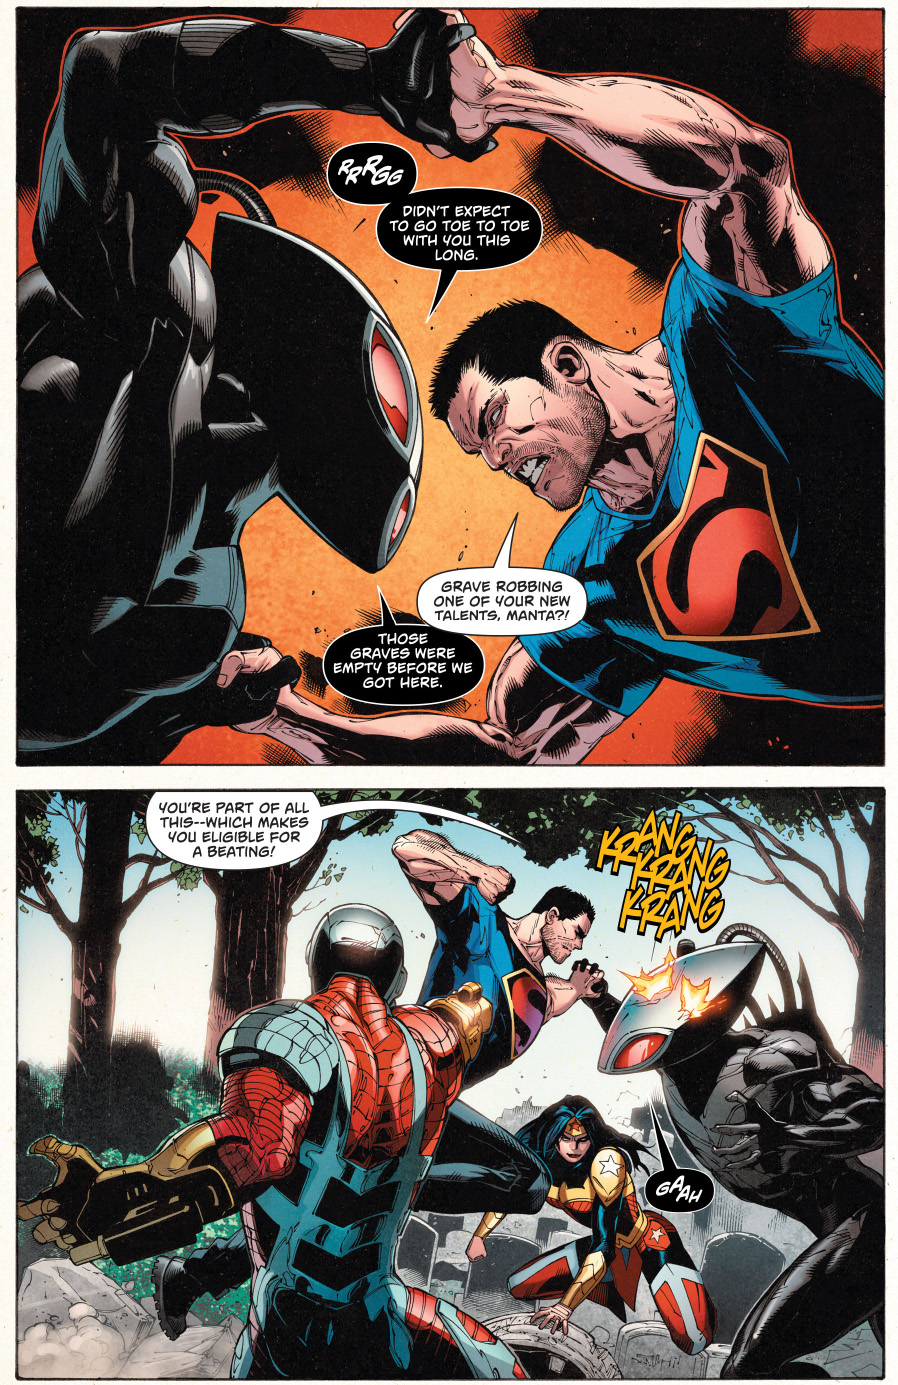 Superman And Wonder Woman Vs The Suicide Squad  Comicnewbies-3051